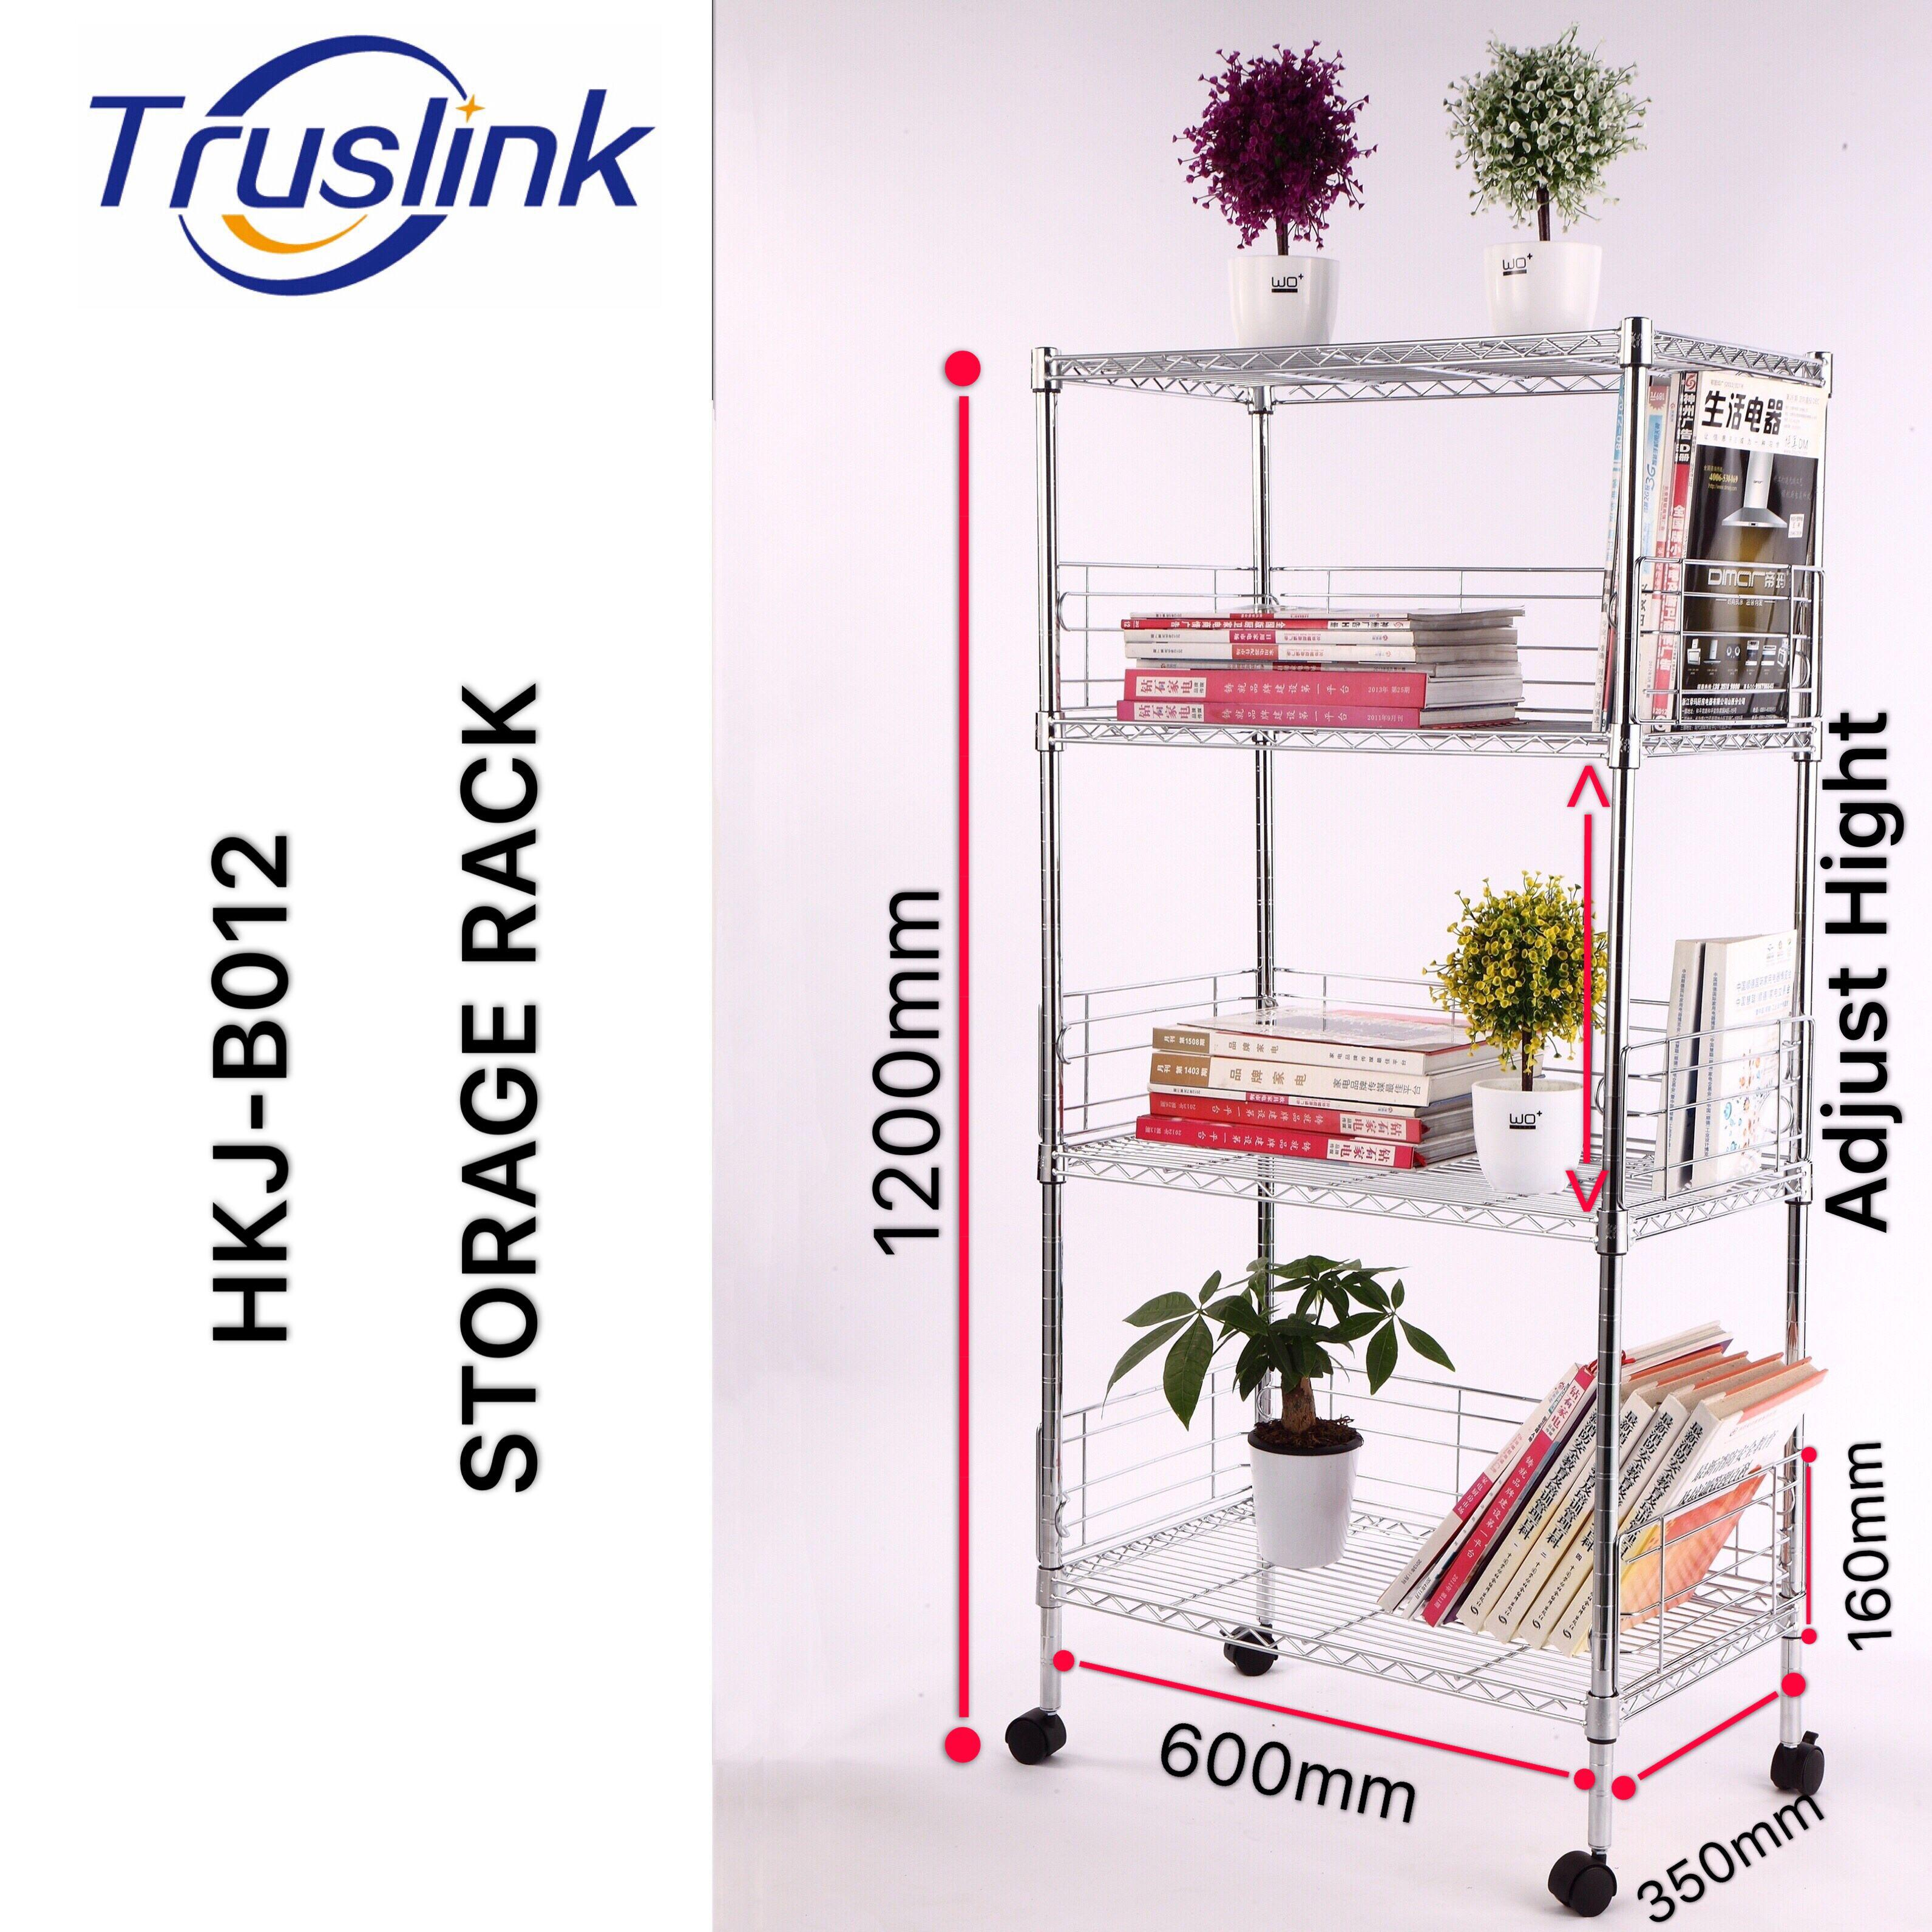 [SG Seller] Truslink  4 Tiers Waterproof Anti-corrosion Height Adjustable Multi-purpose Shelving Unit Storage Organisation Rack With wheels Suitable for Office、Kitchen、Living、Storage Room--Linear Space HKJ-B012